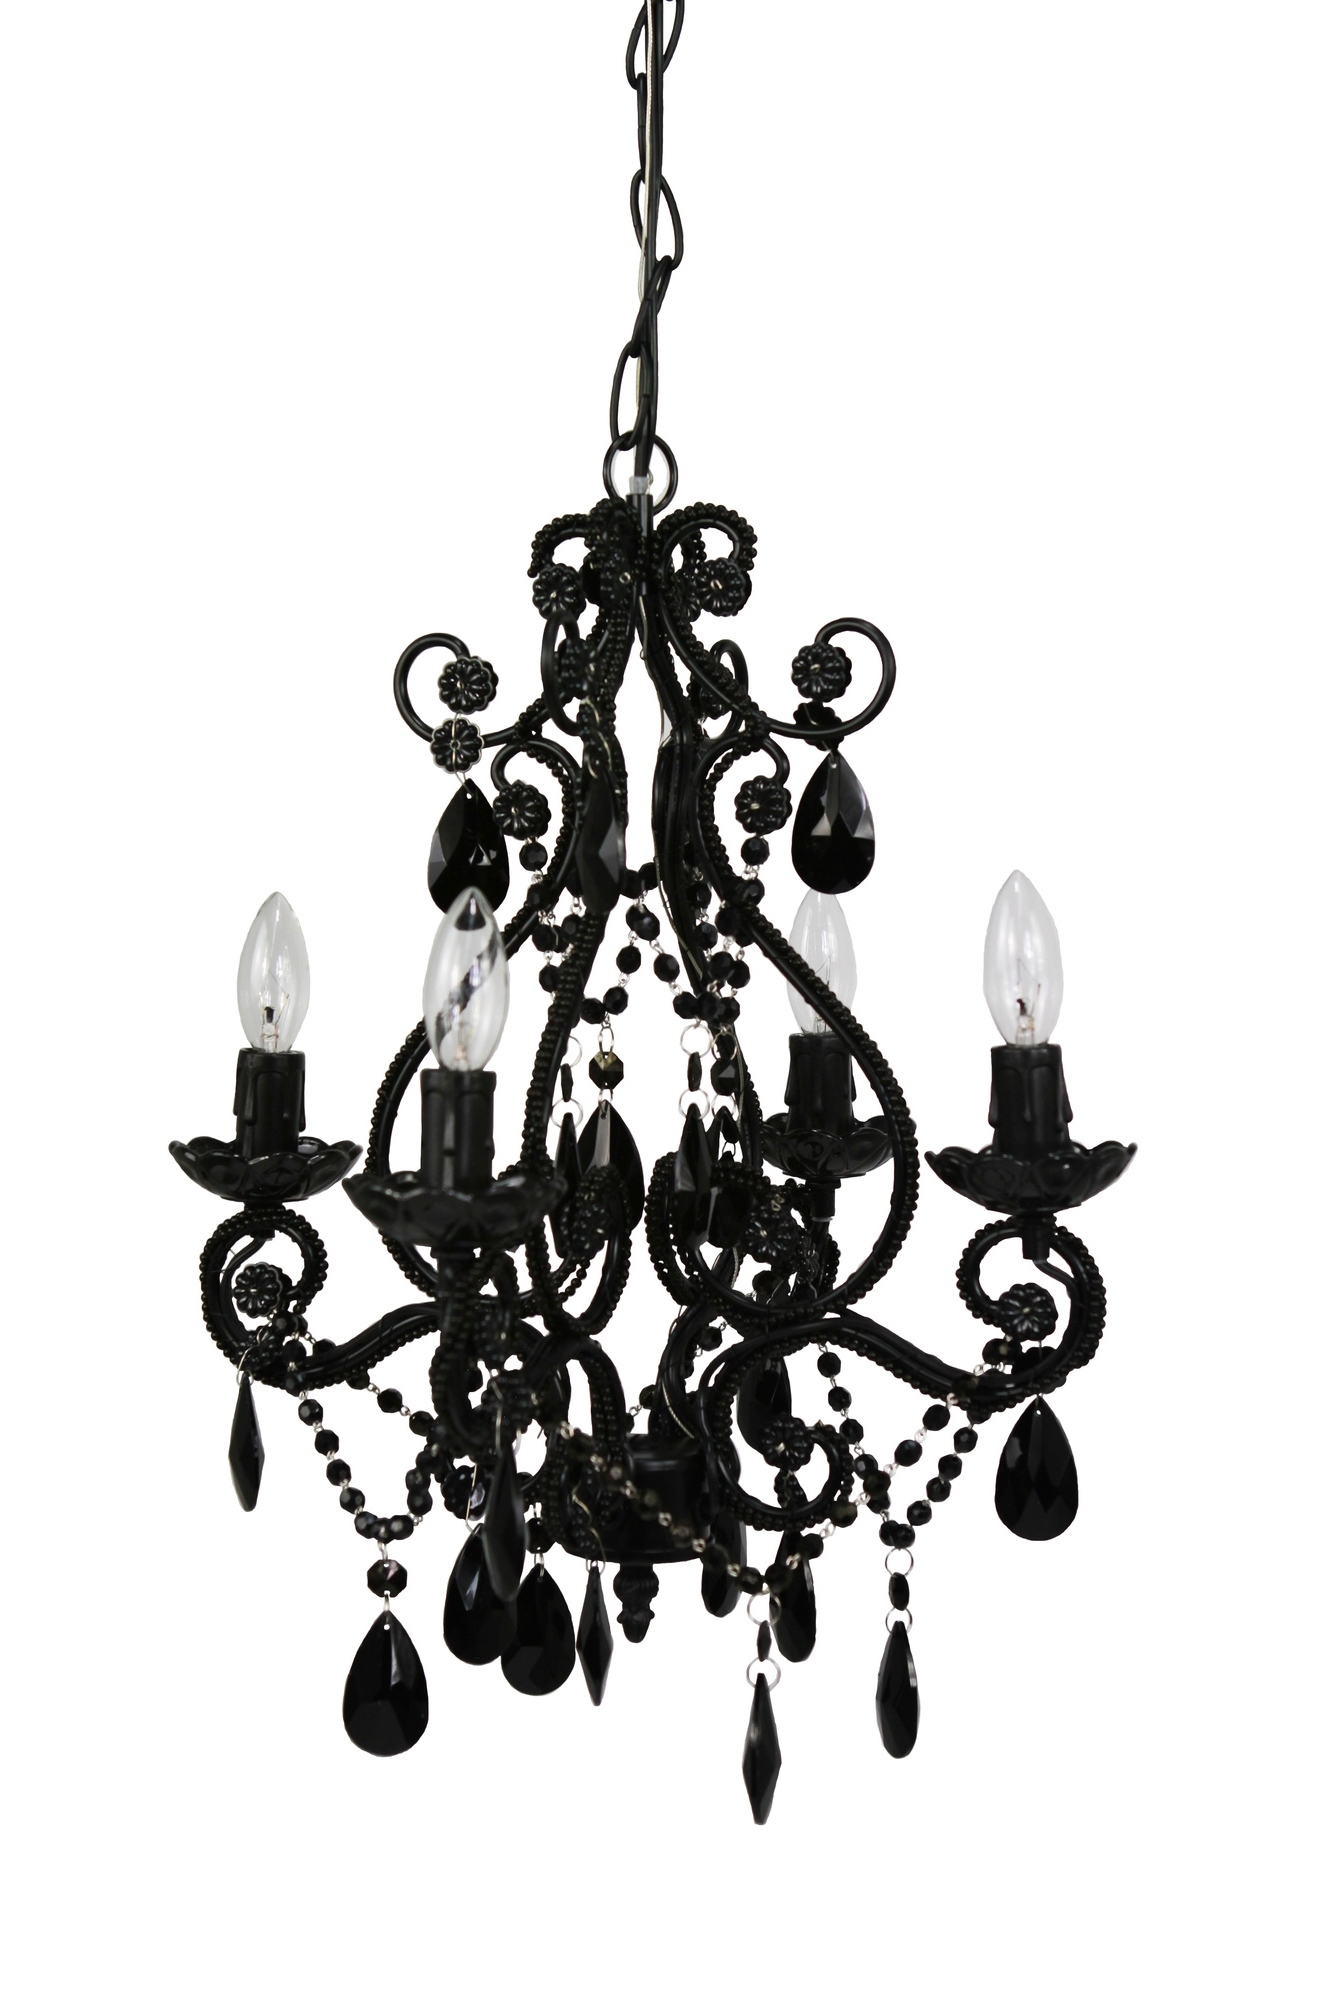 Cheap Chandelier, Chandeliers And Modern (View 8 of 20)